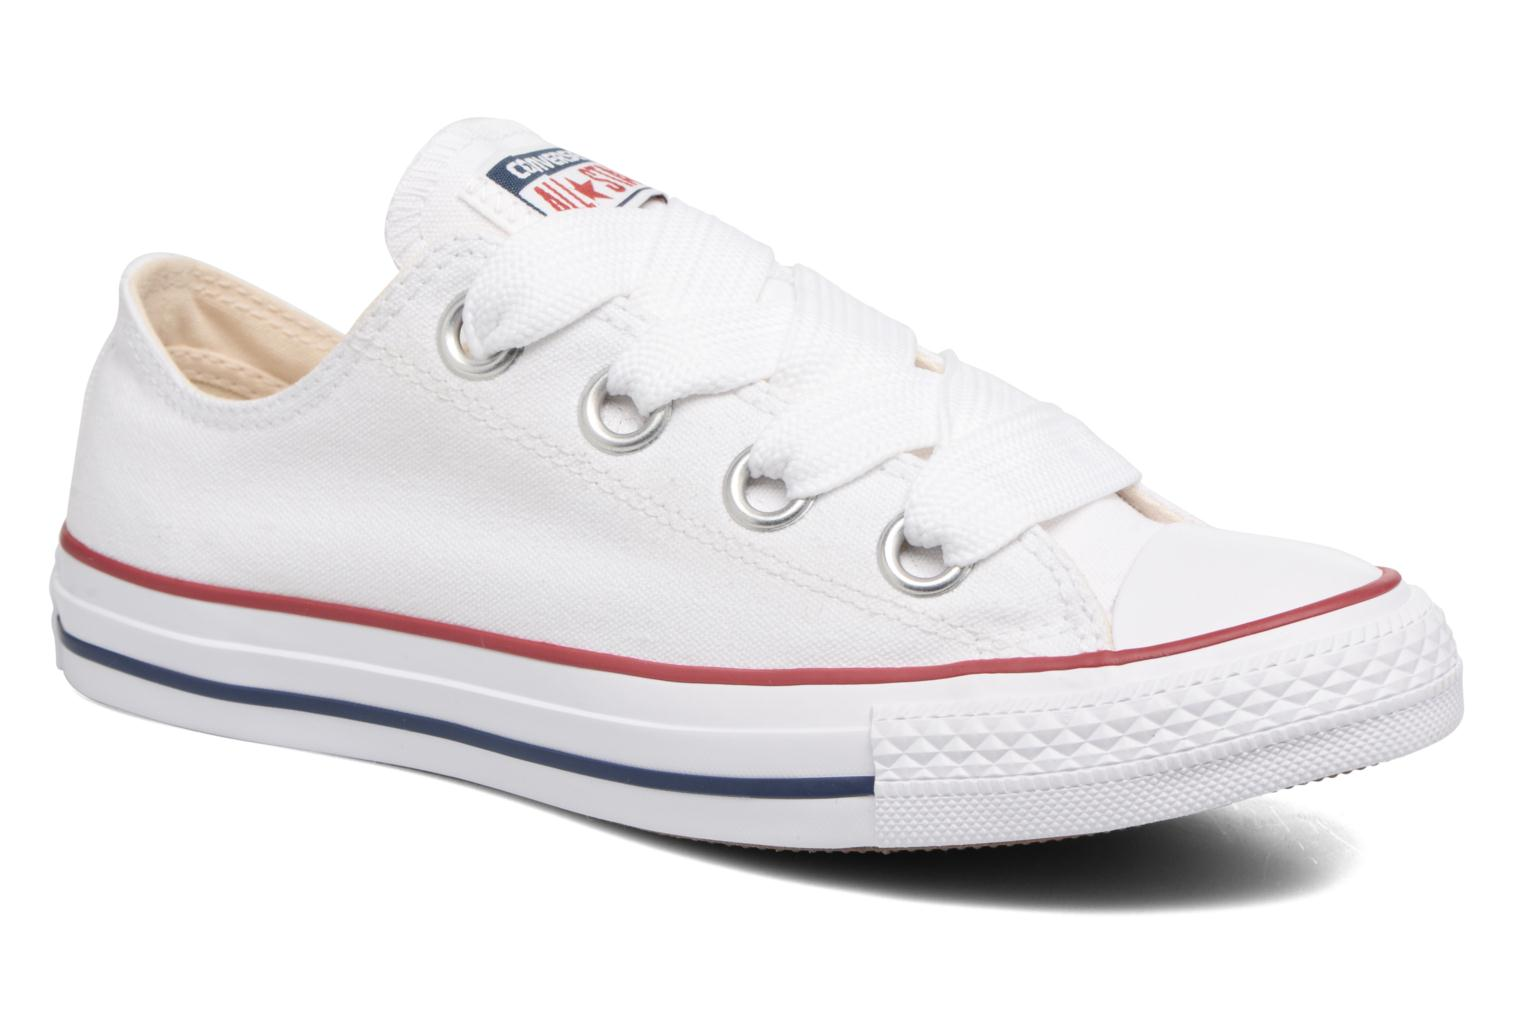 ALL STAR BELLES CONVERSE POINTURE 38 1/2